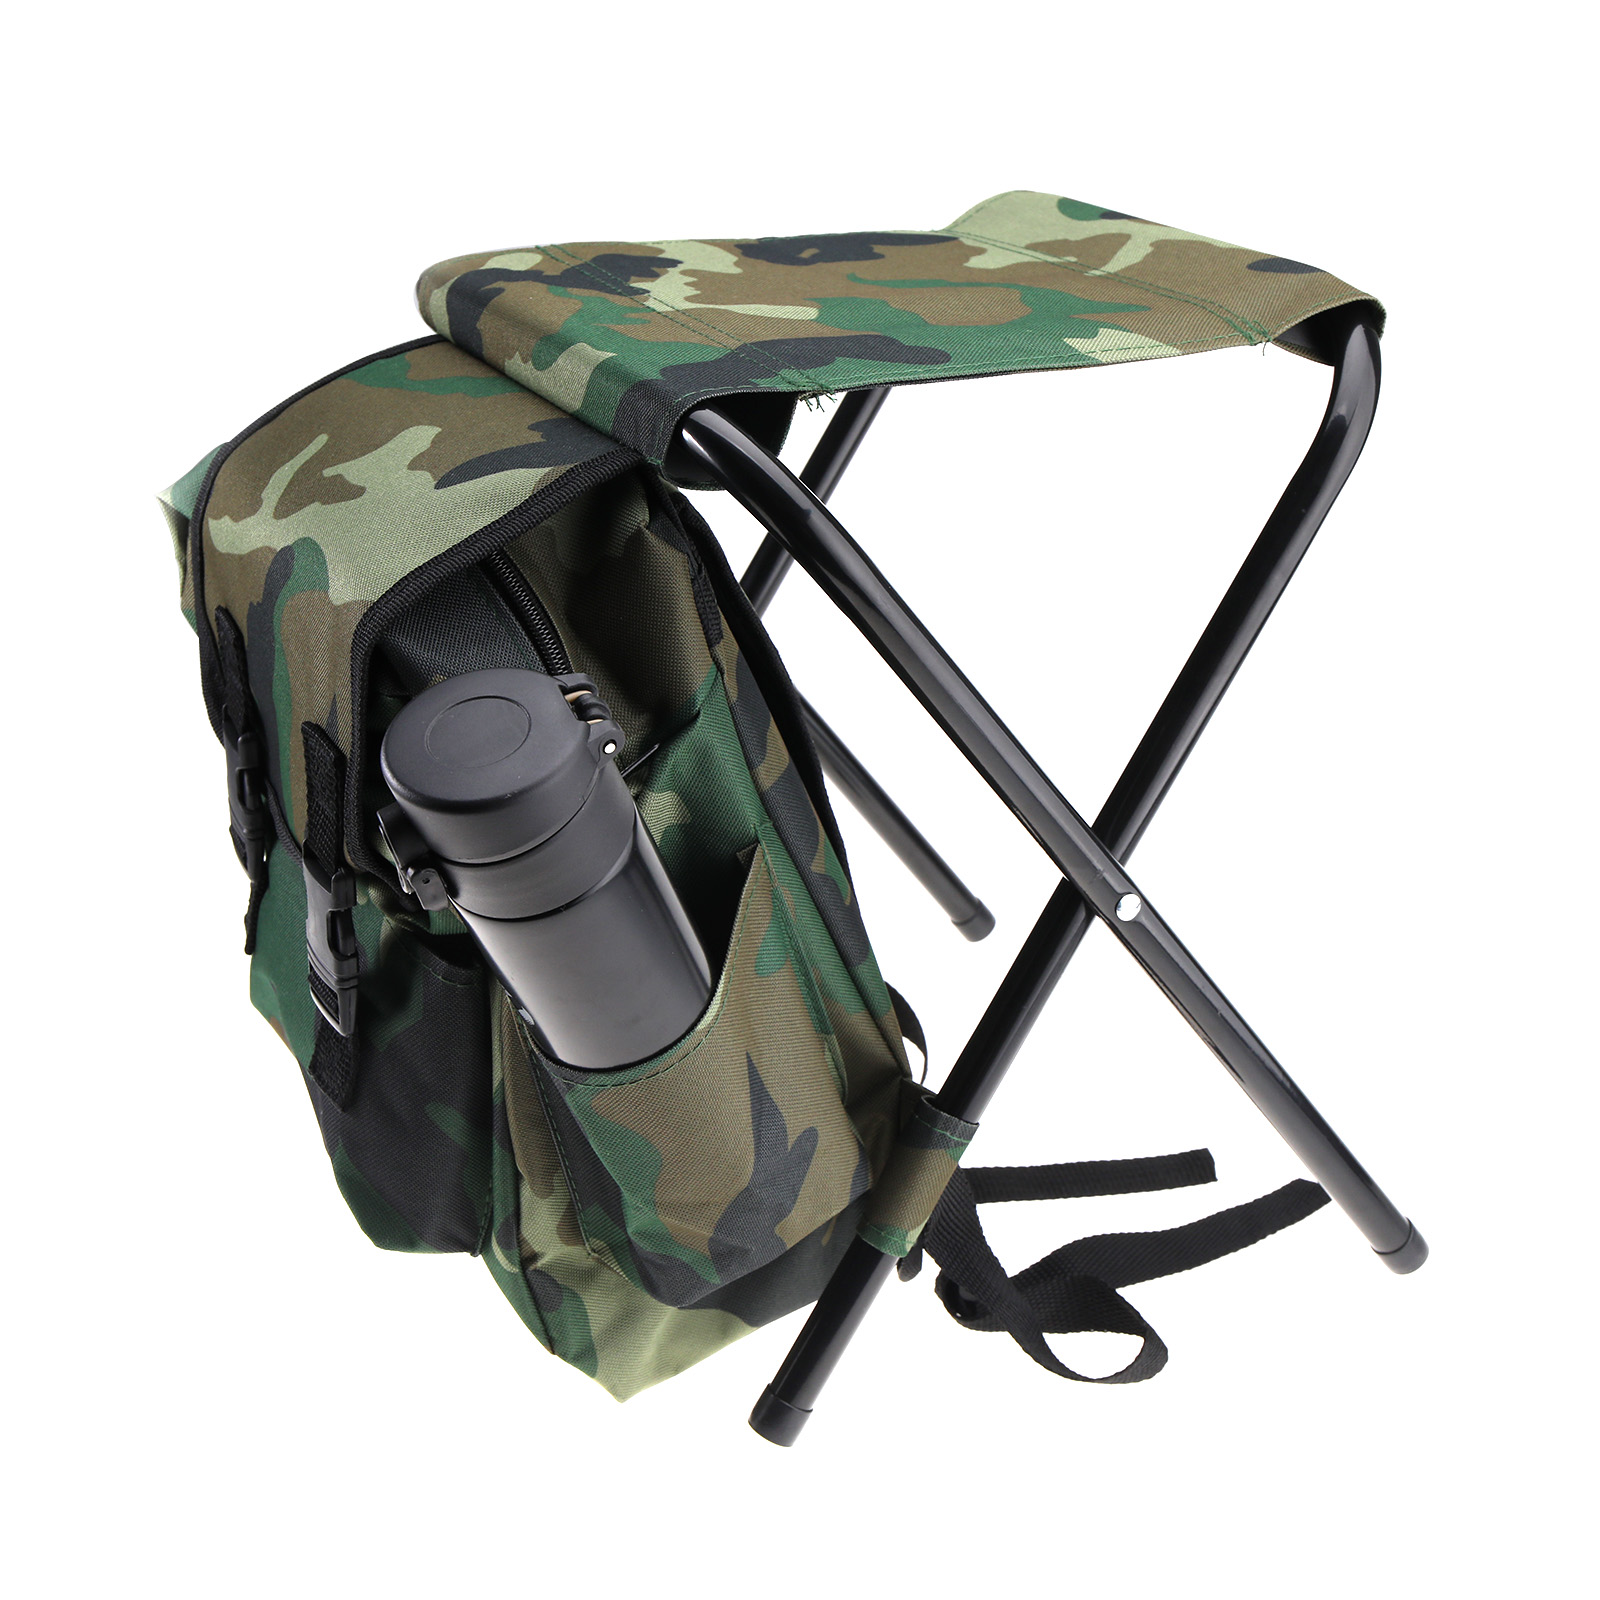 Foldable outdoor fishing chair stool backpack travel for Backpacking fishing kit